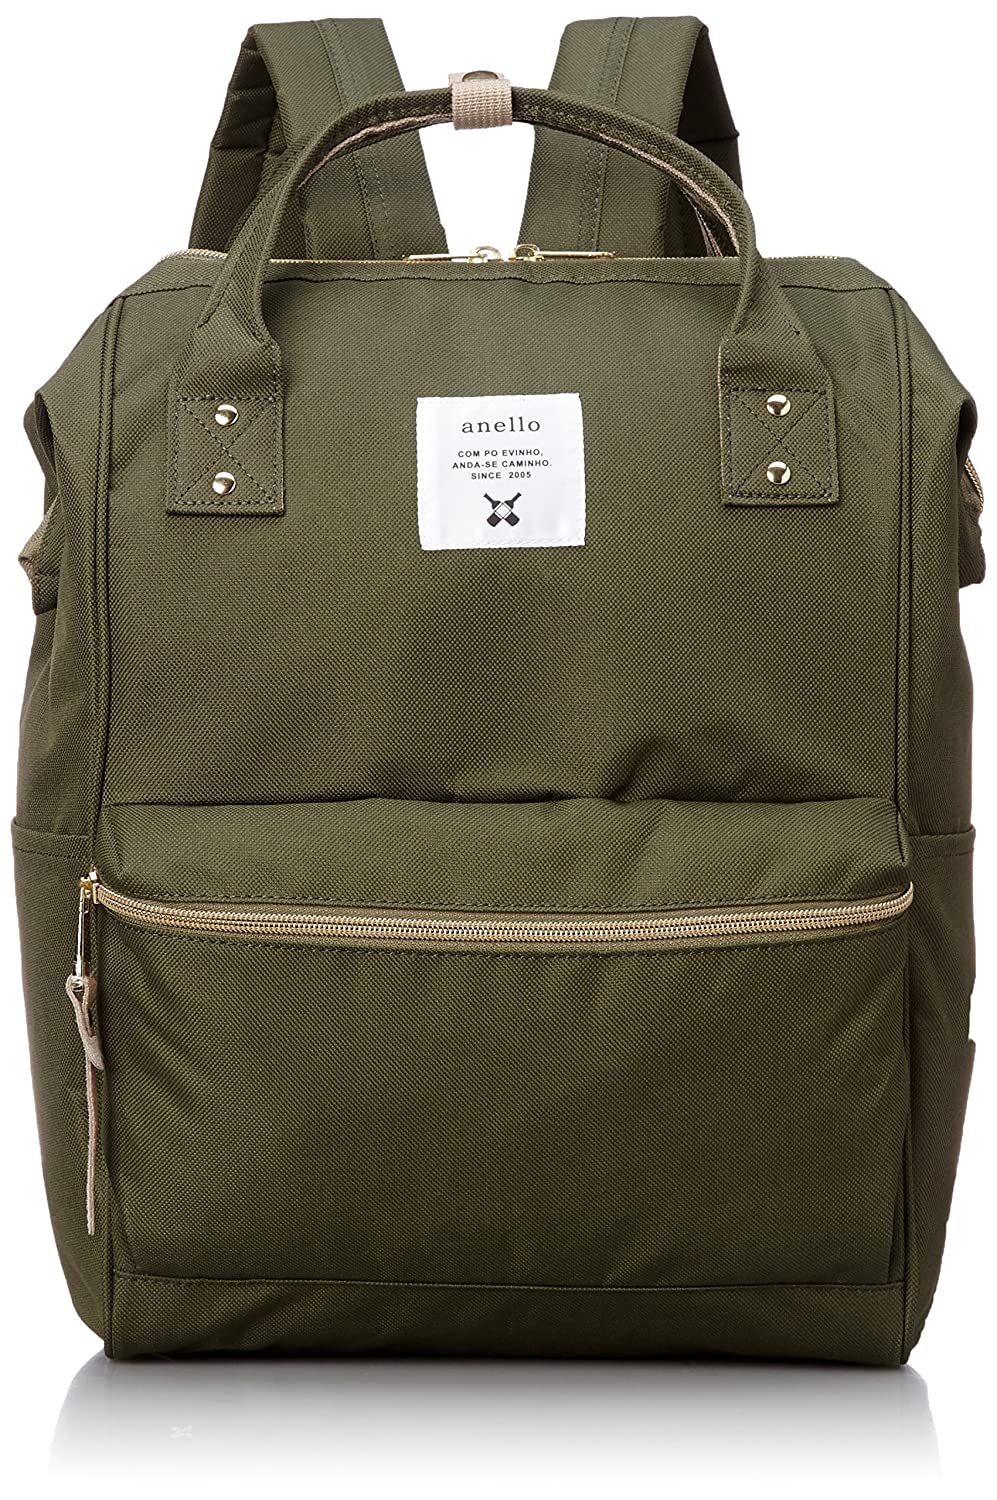 daf5acf6d826 Japan Anello Backpack Unisex LARGE KHAKI Rucksack Waterproof Canvas Bag  Campus School  Amazon.ca  Luggage   Bags